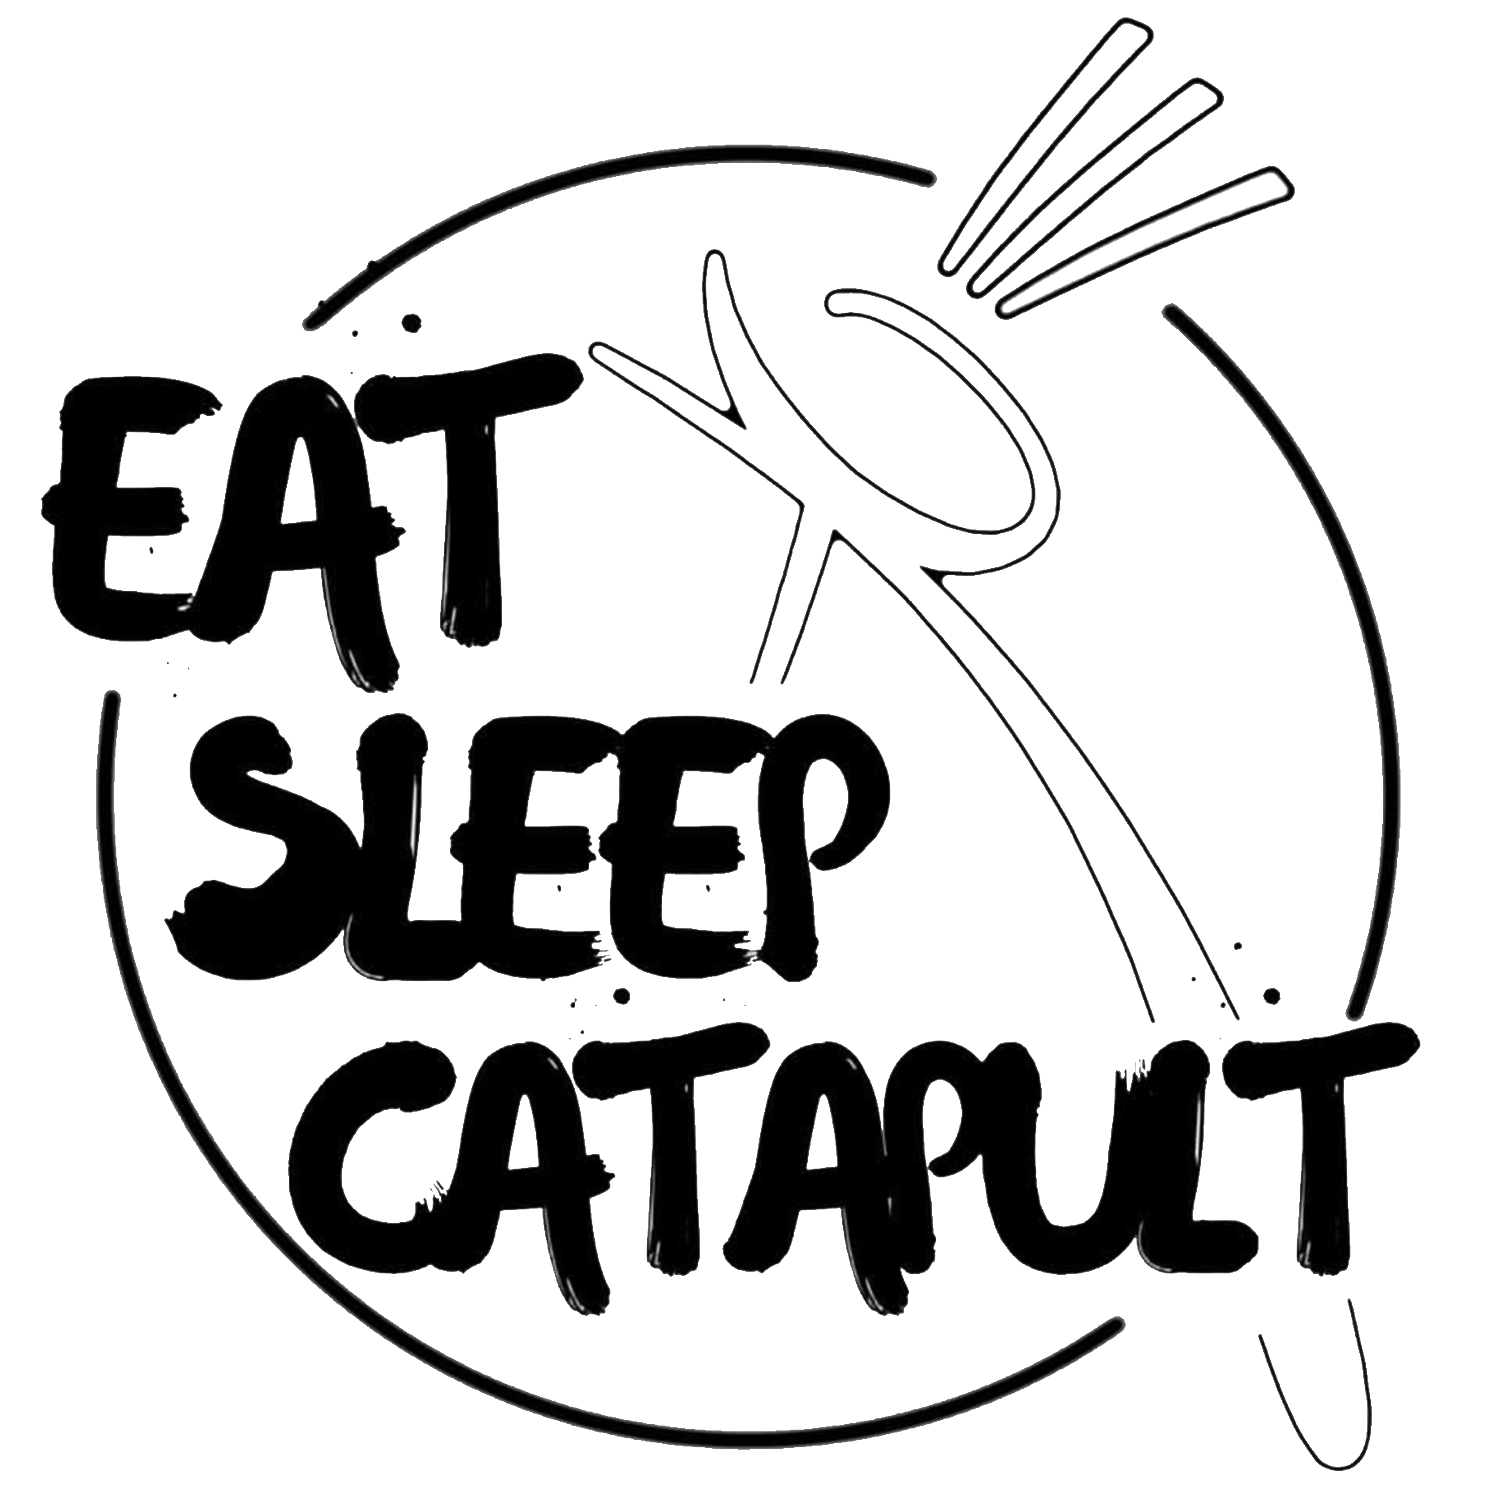 Eat. Sleep. Catapult.